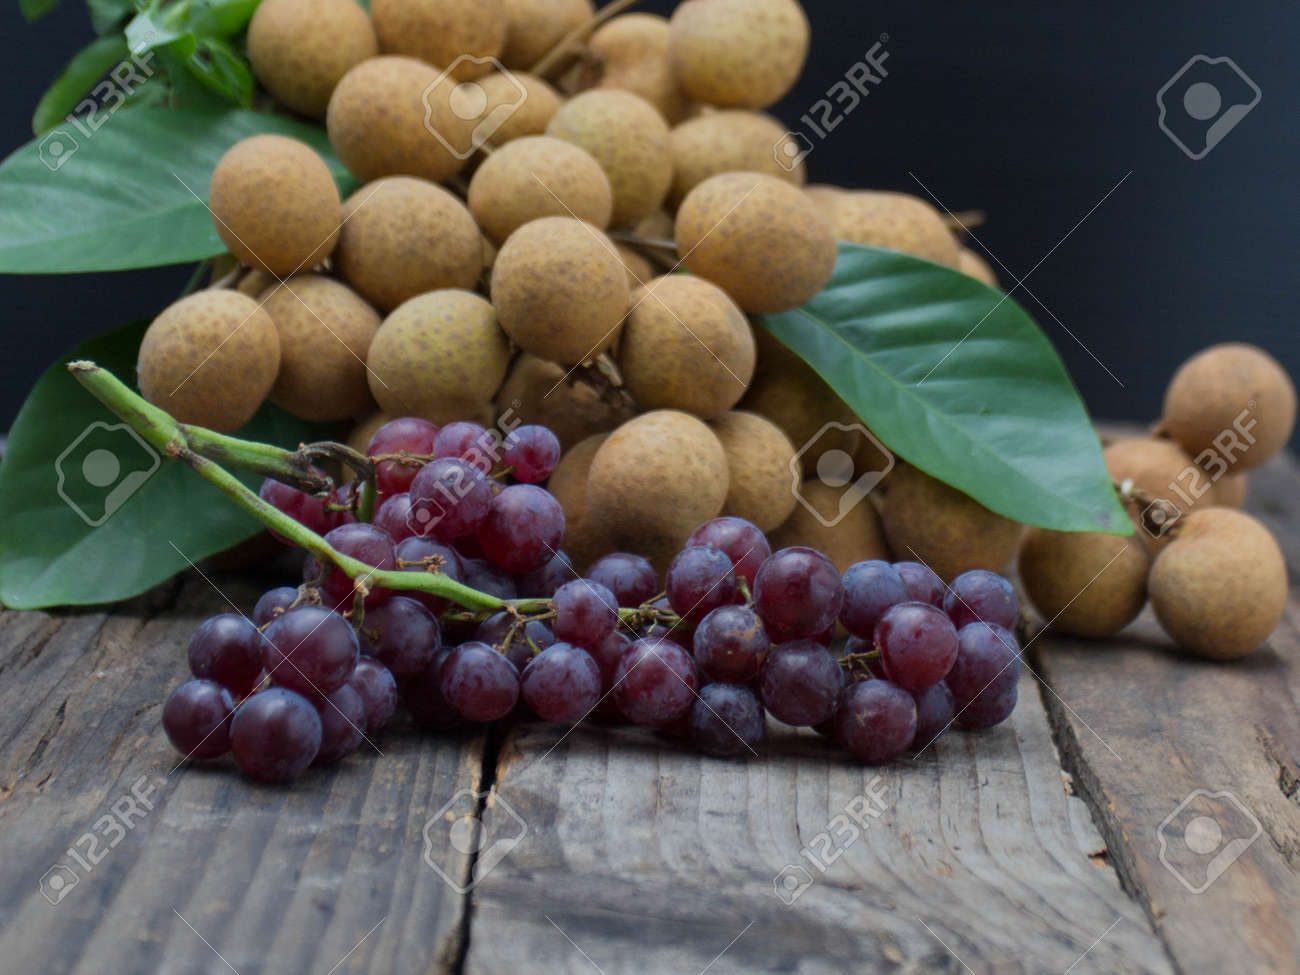 Lots of longan fruit on the wooden table. - 153222424